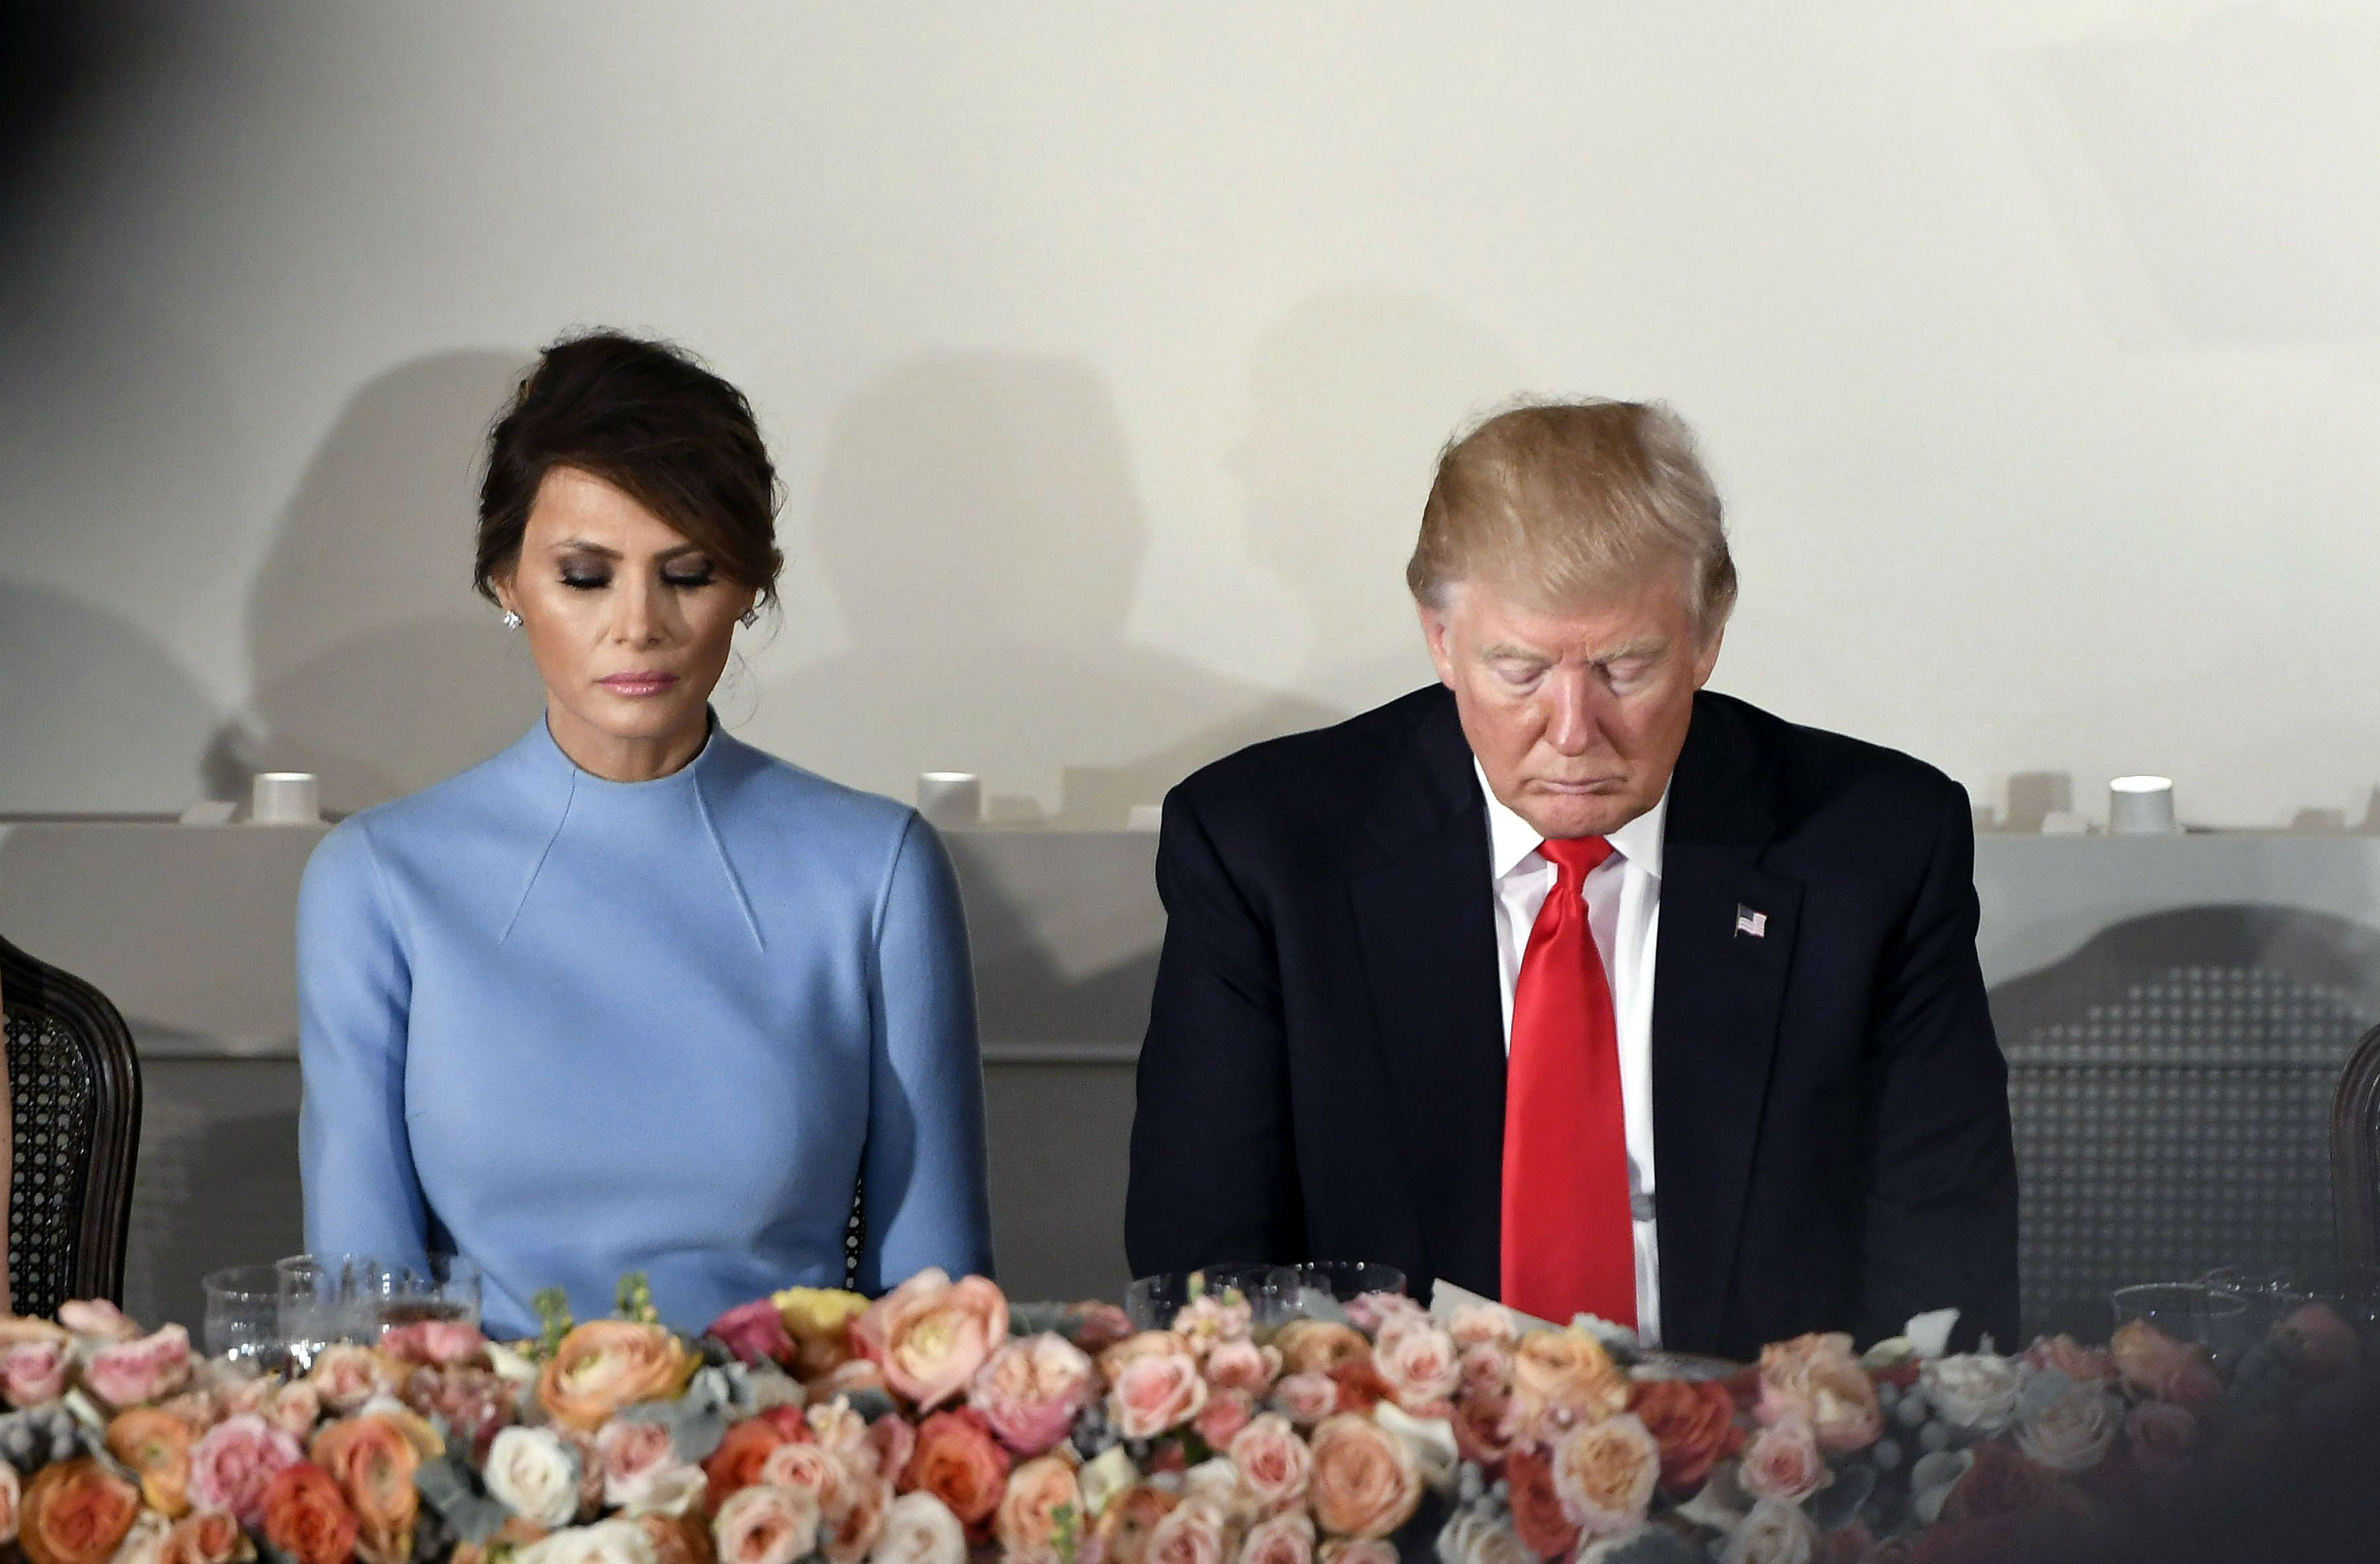 Why the body language between Melania and Donald is so fascinating to watch